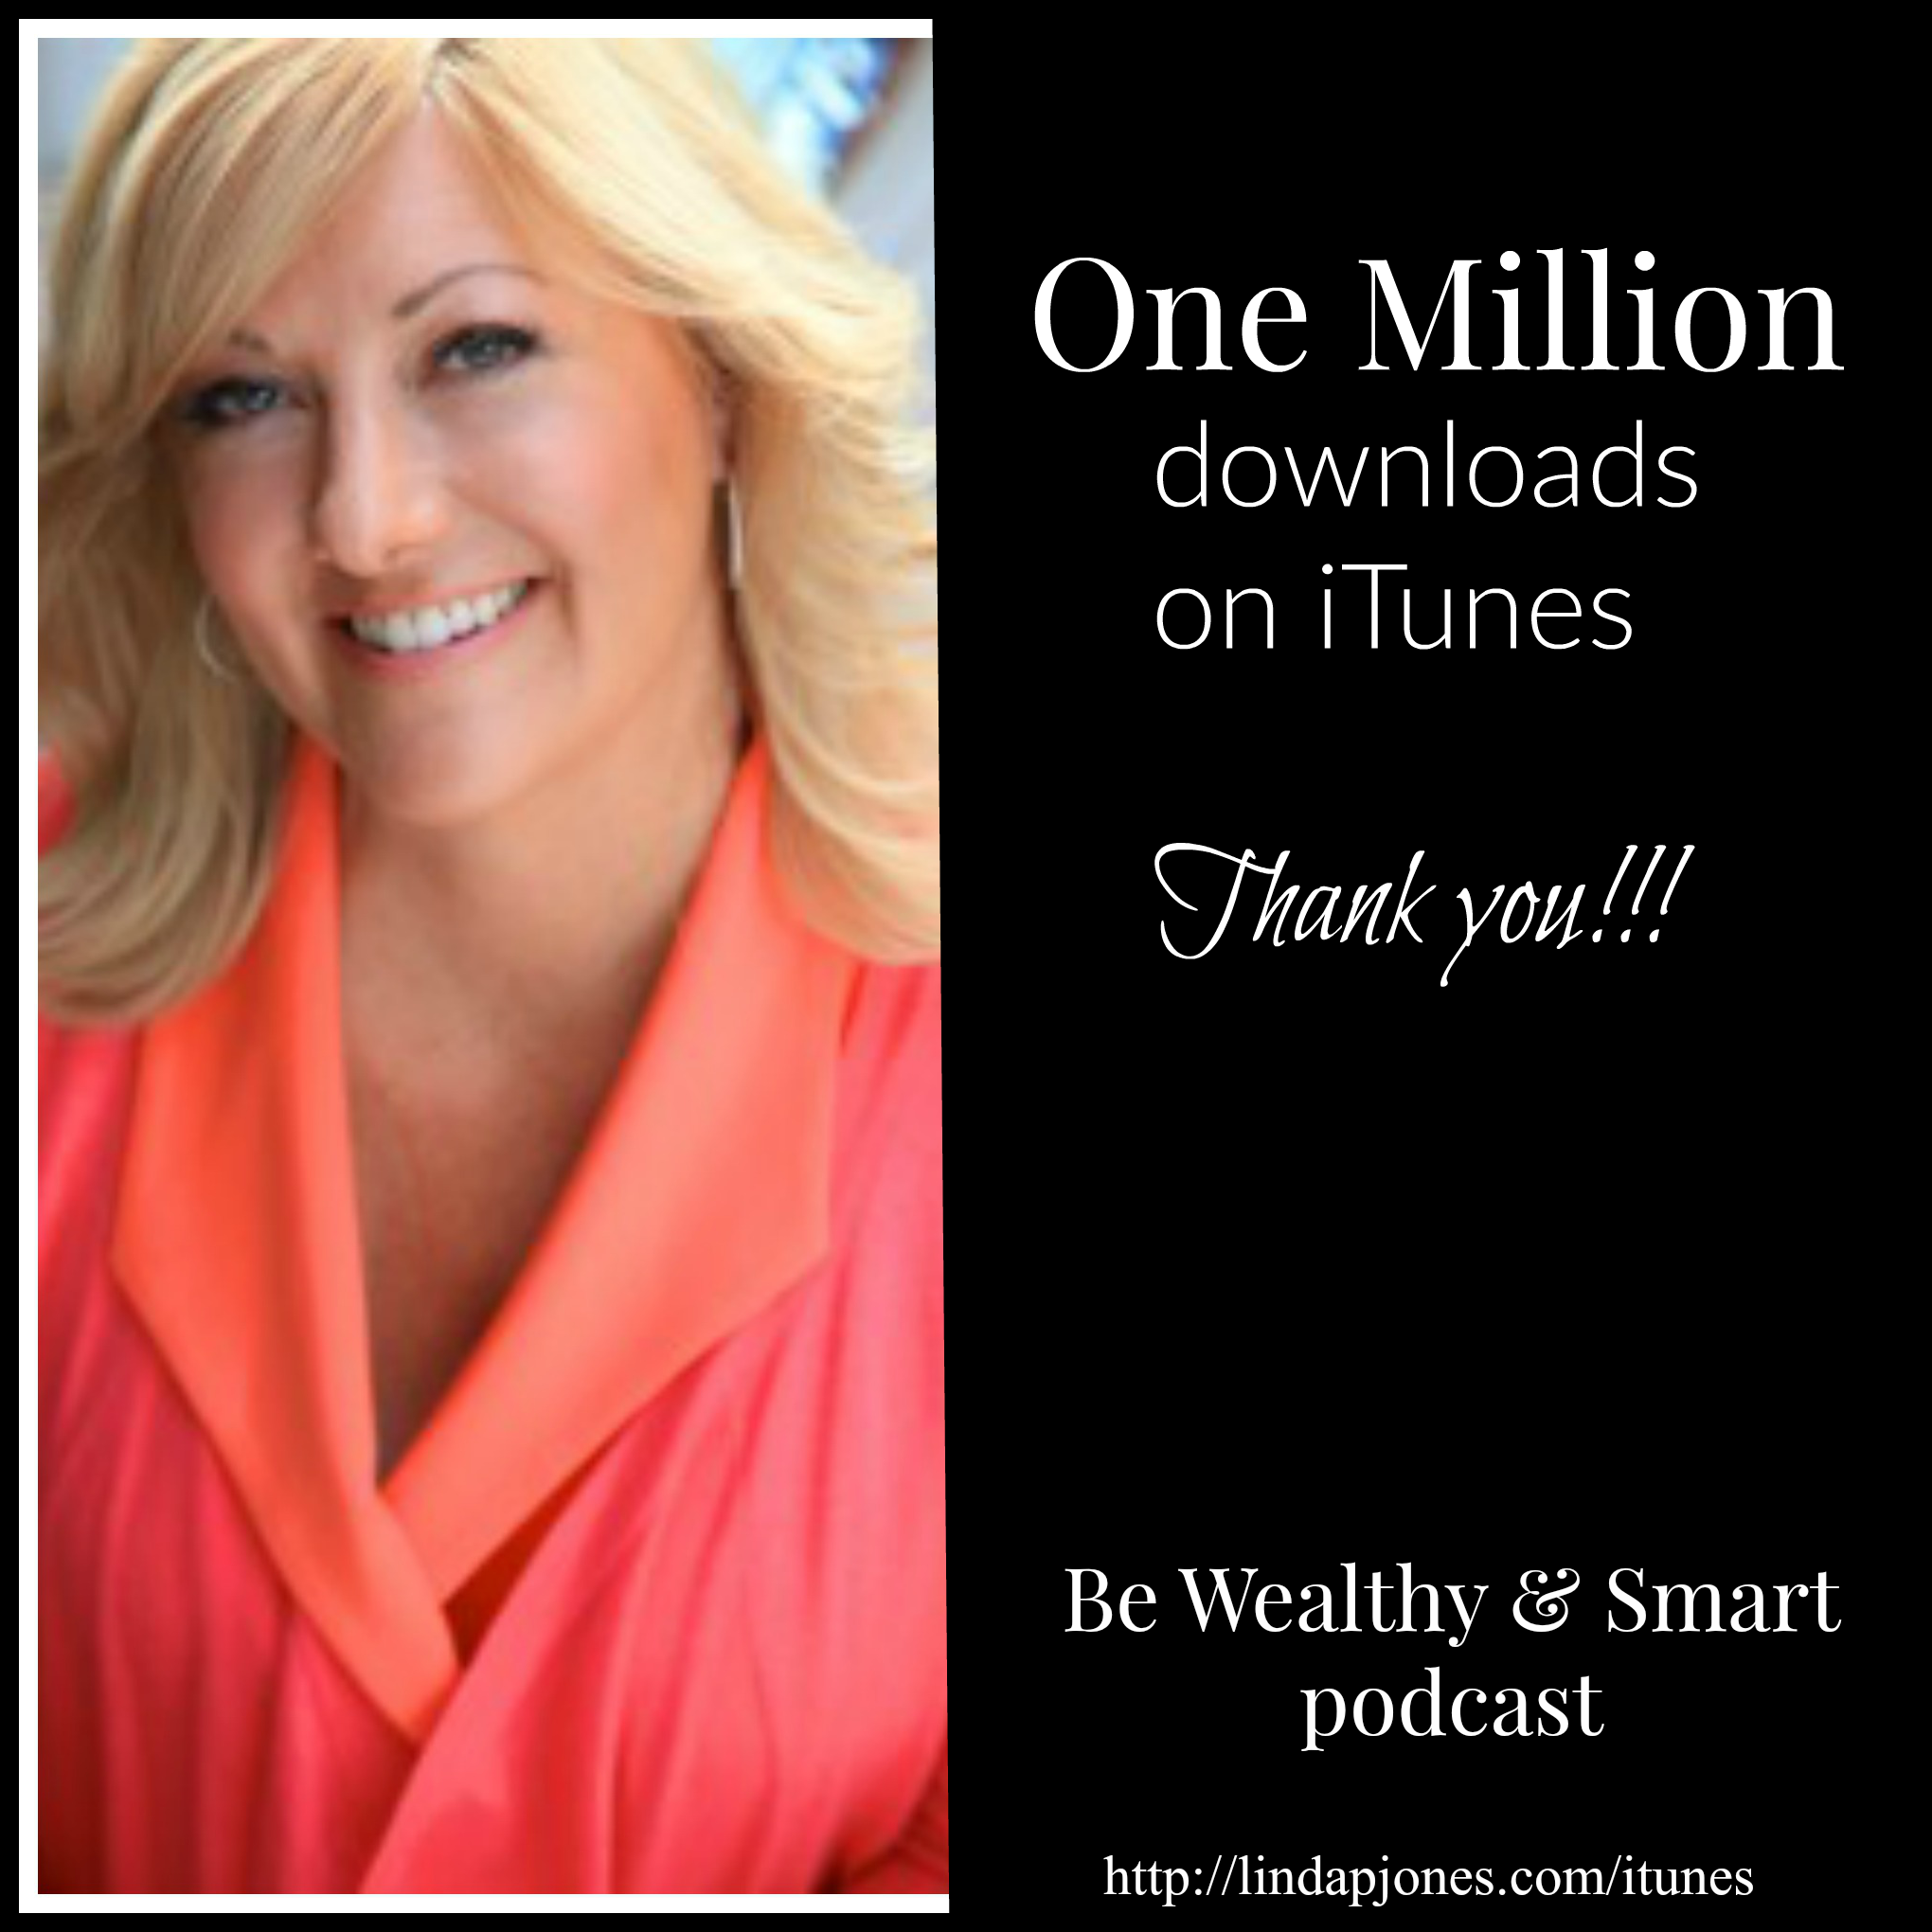 5 Tips to Get to a Million Podcast Downloads on iTunes